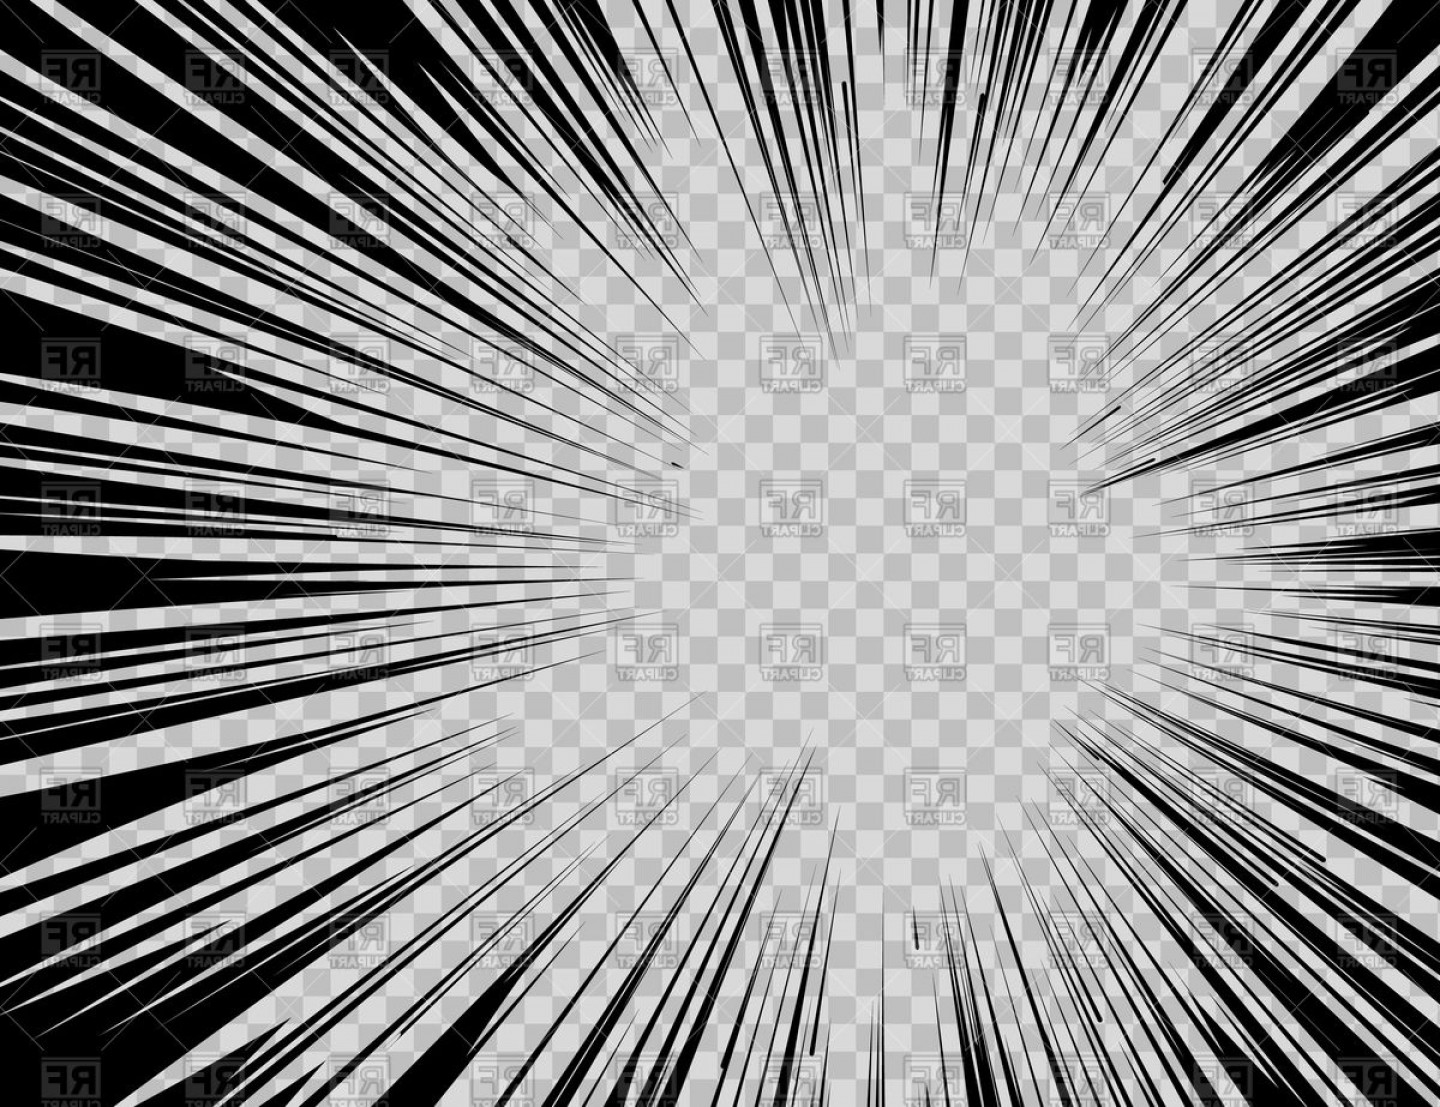 Radial lines clipart image royalty free library Abstract Comic Book Flash Explosion Radial Lines On ... image royalty free library